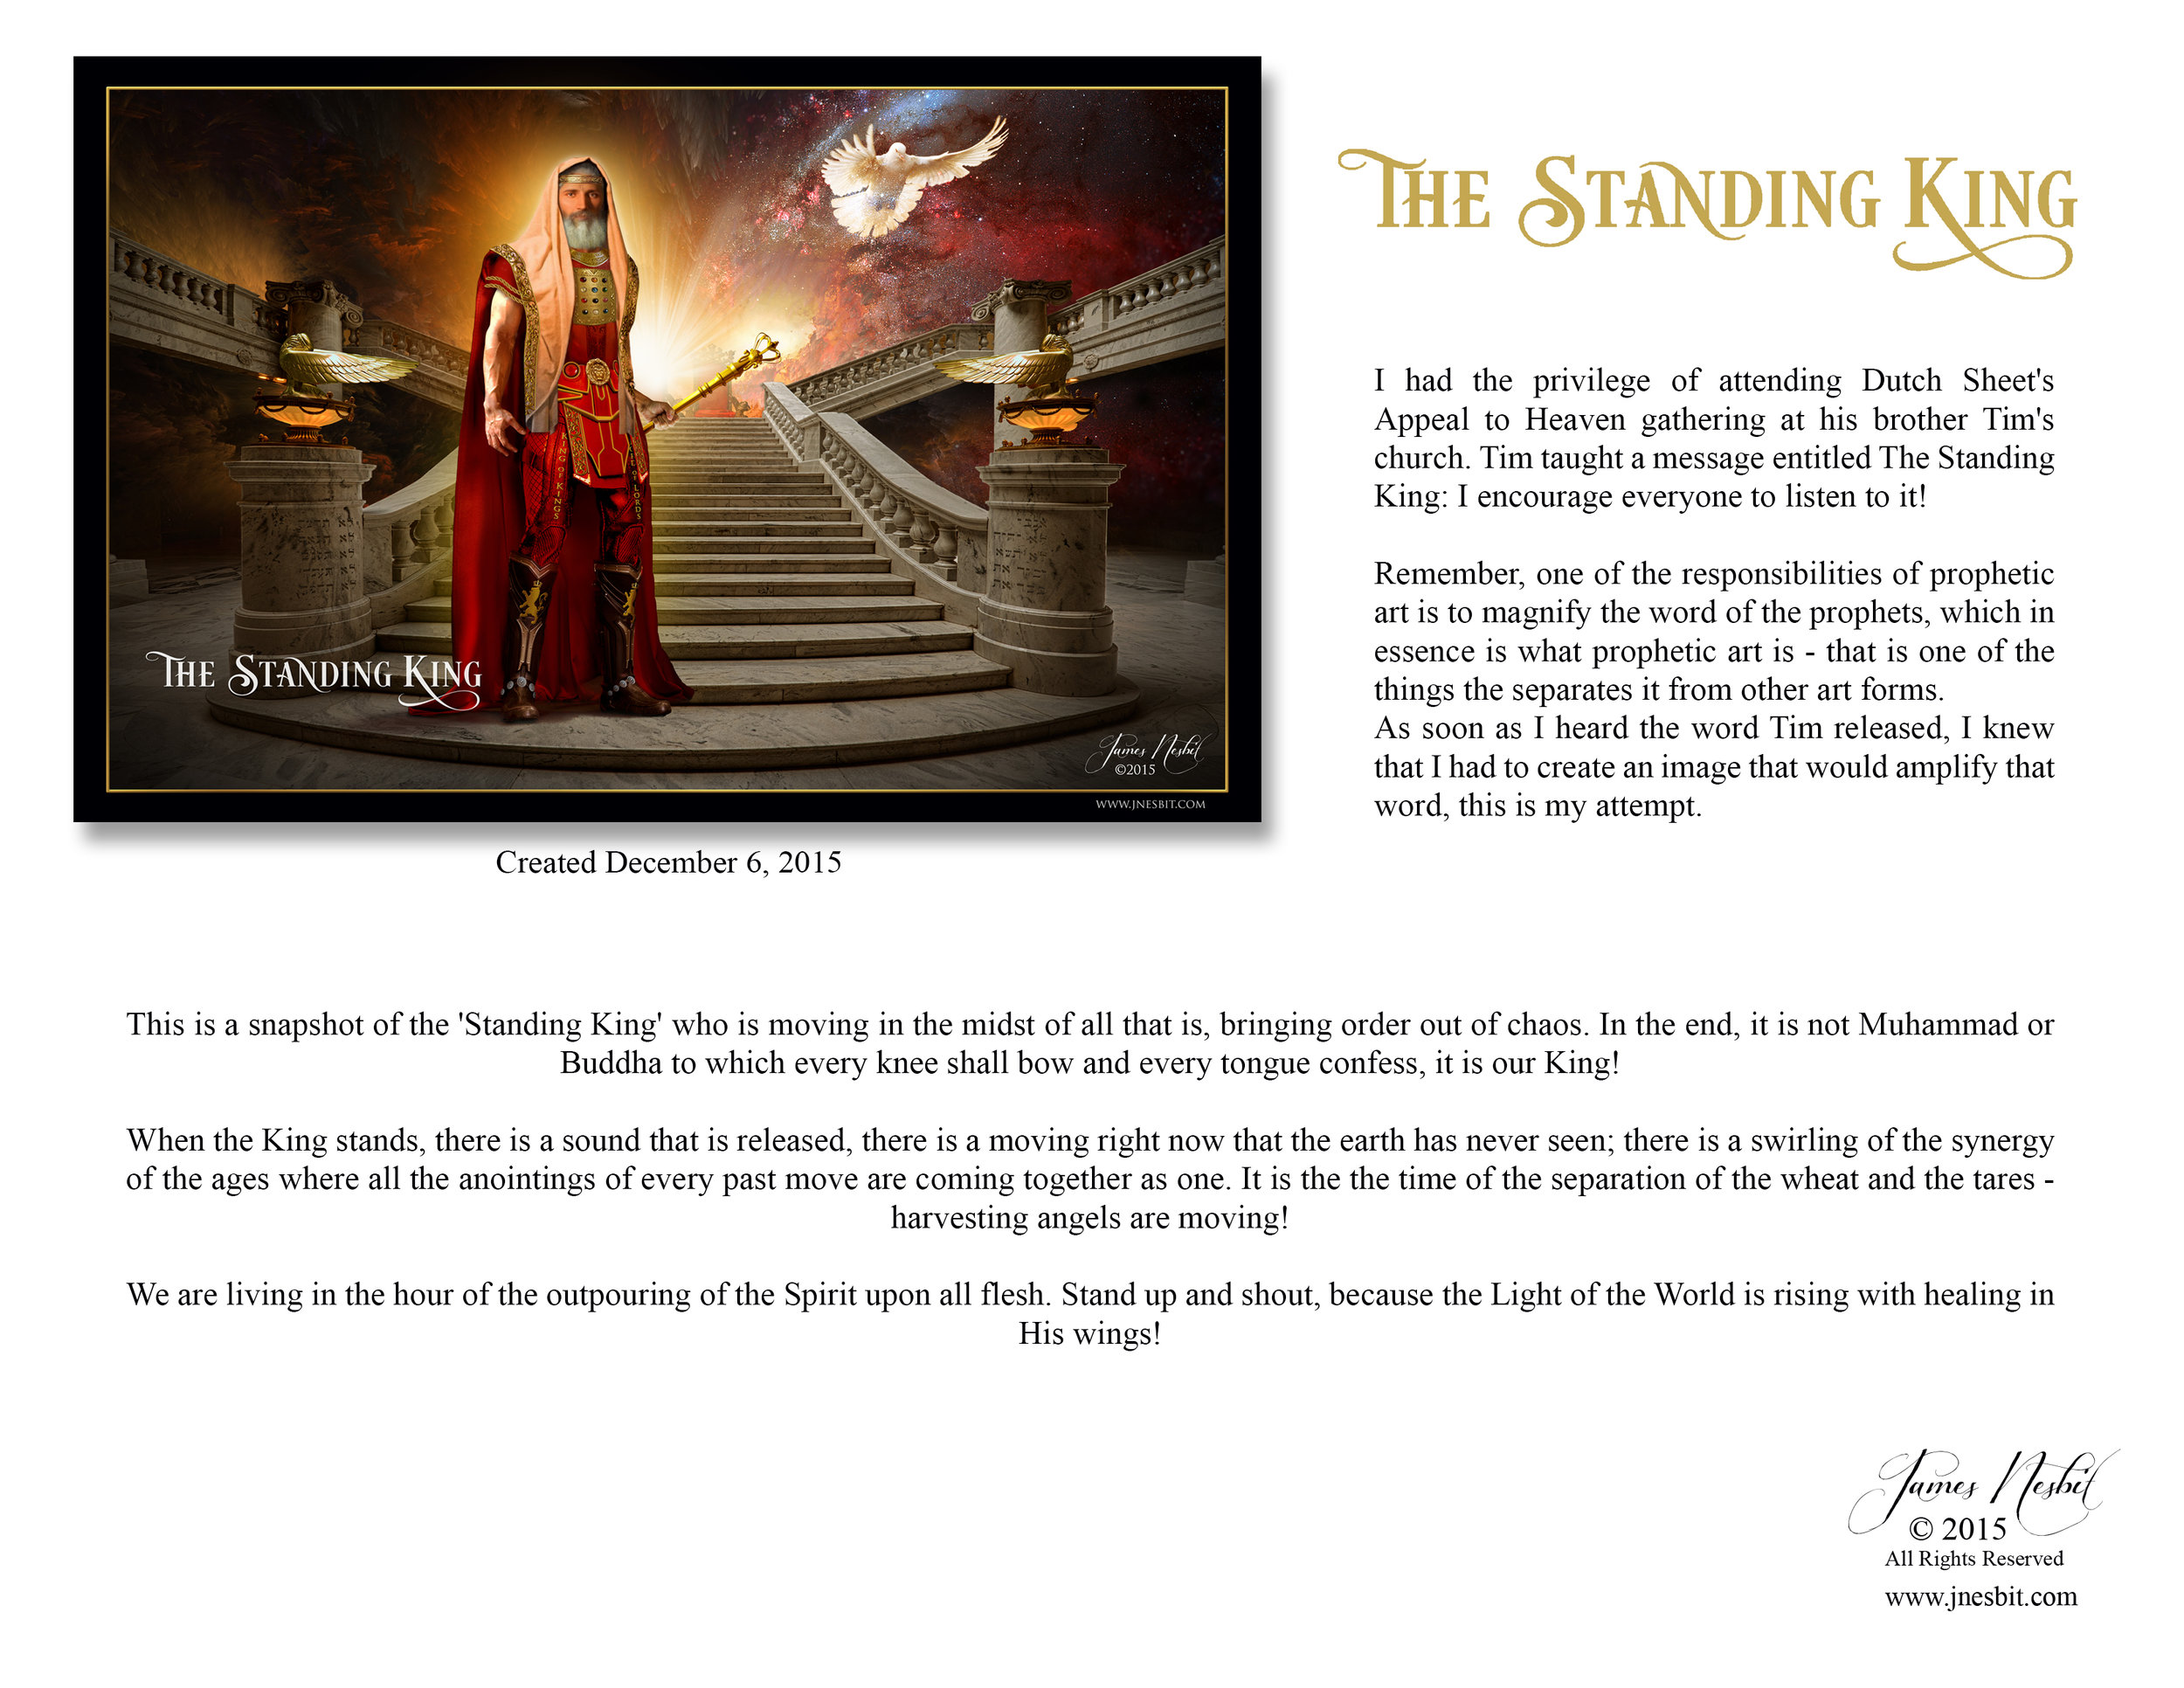 The Standing King Description  copy.jpg